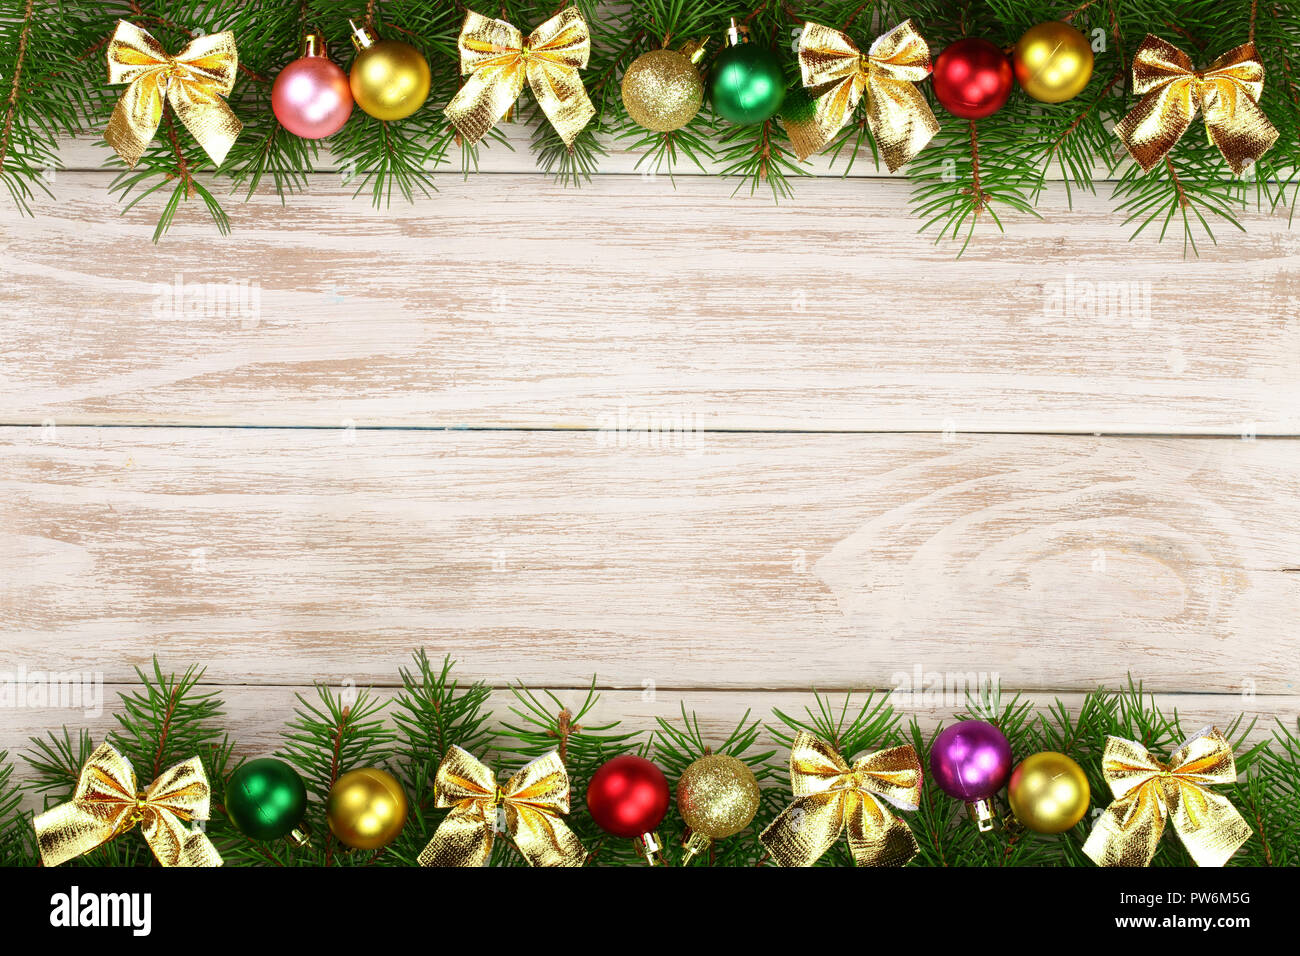 Christmas frame made of fir branches decorated with balls and bows on a light wooden background - Stock Image